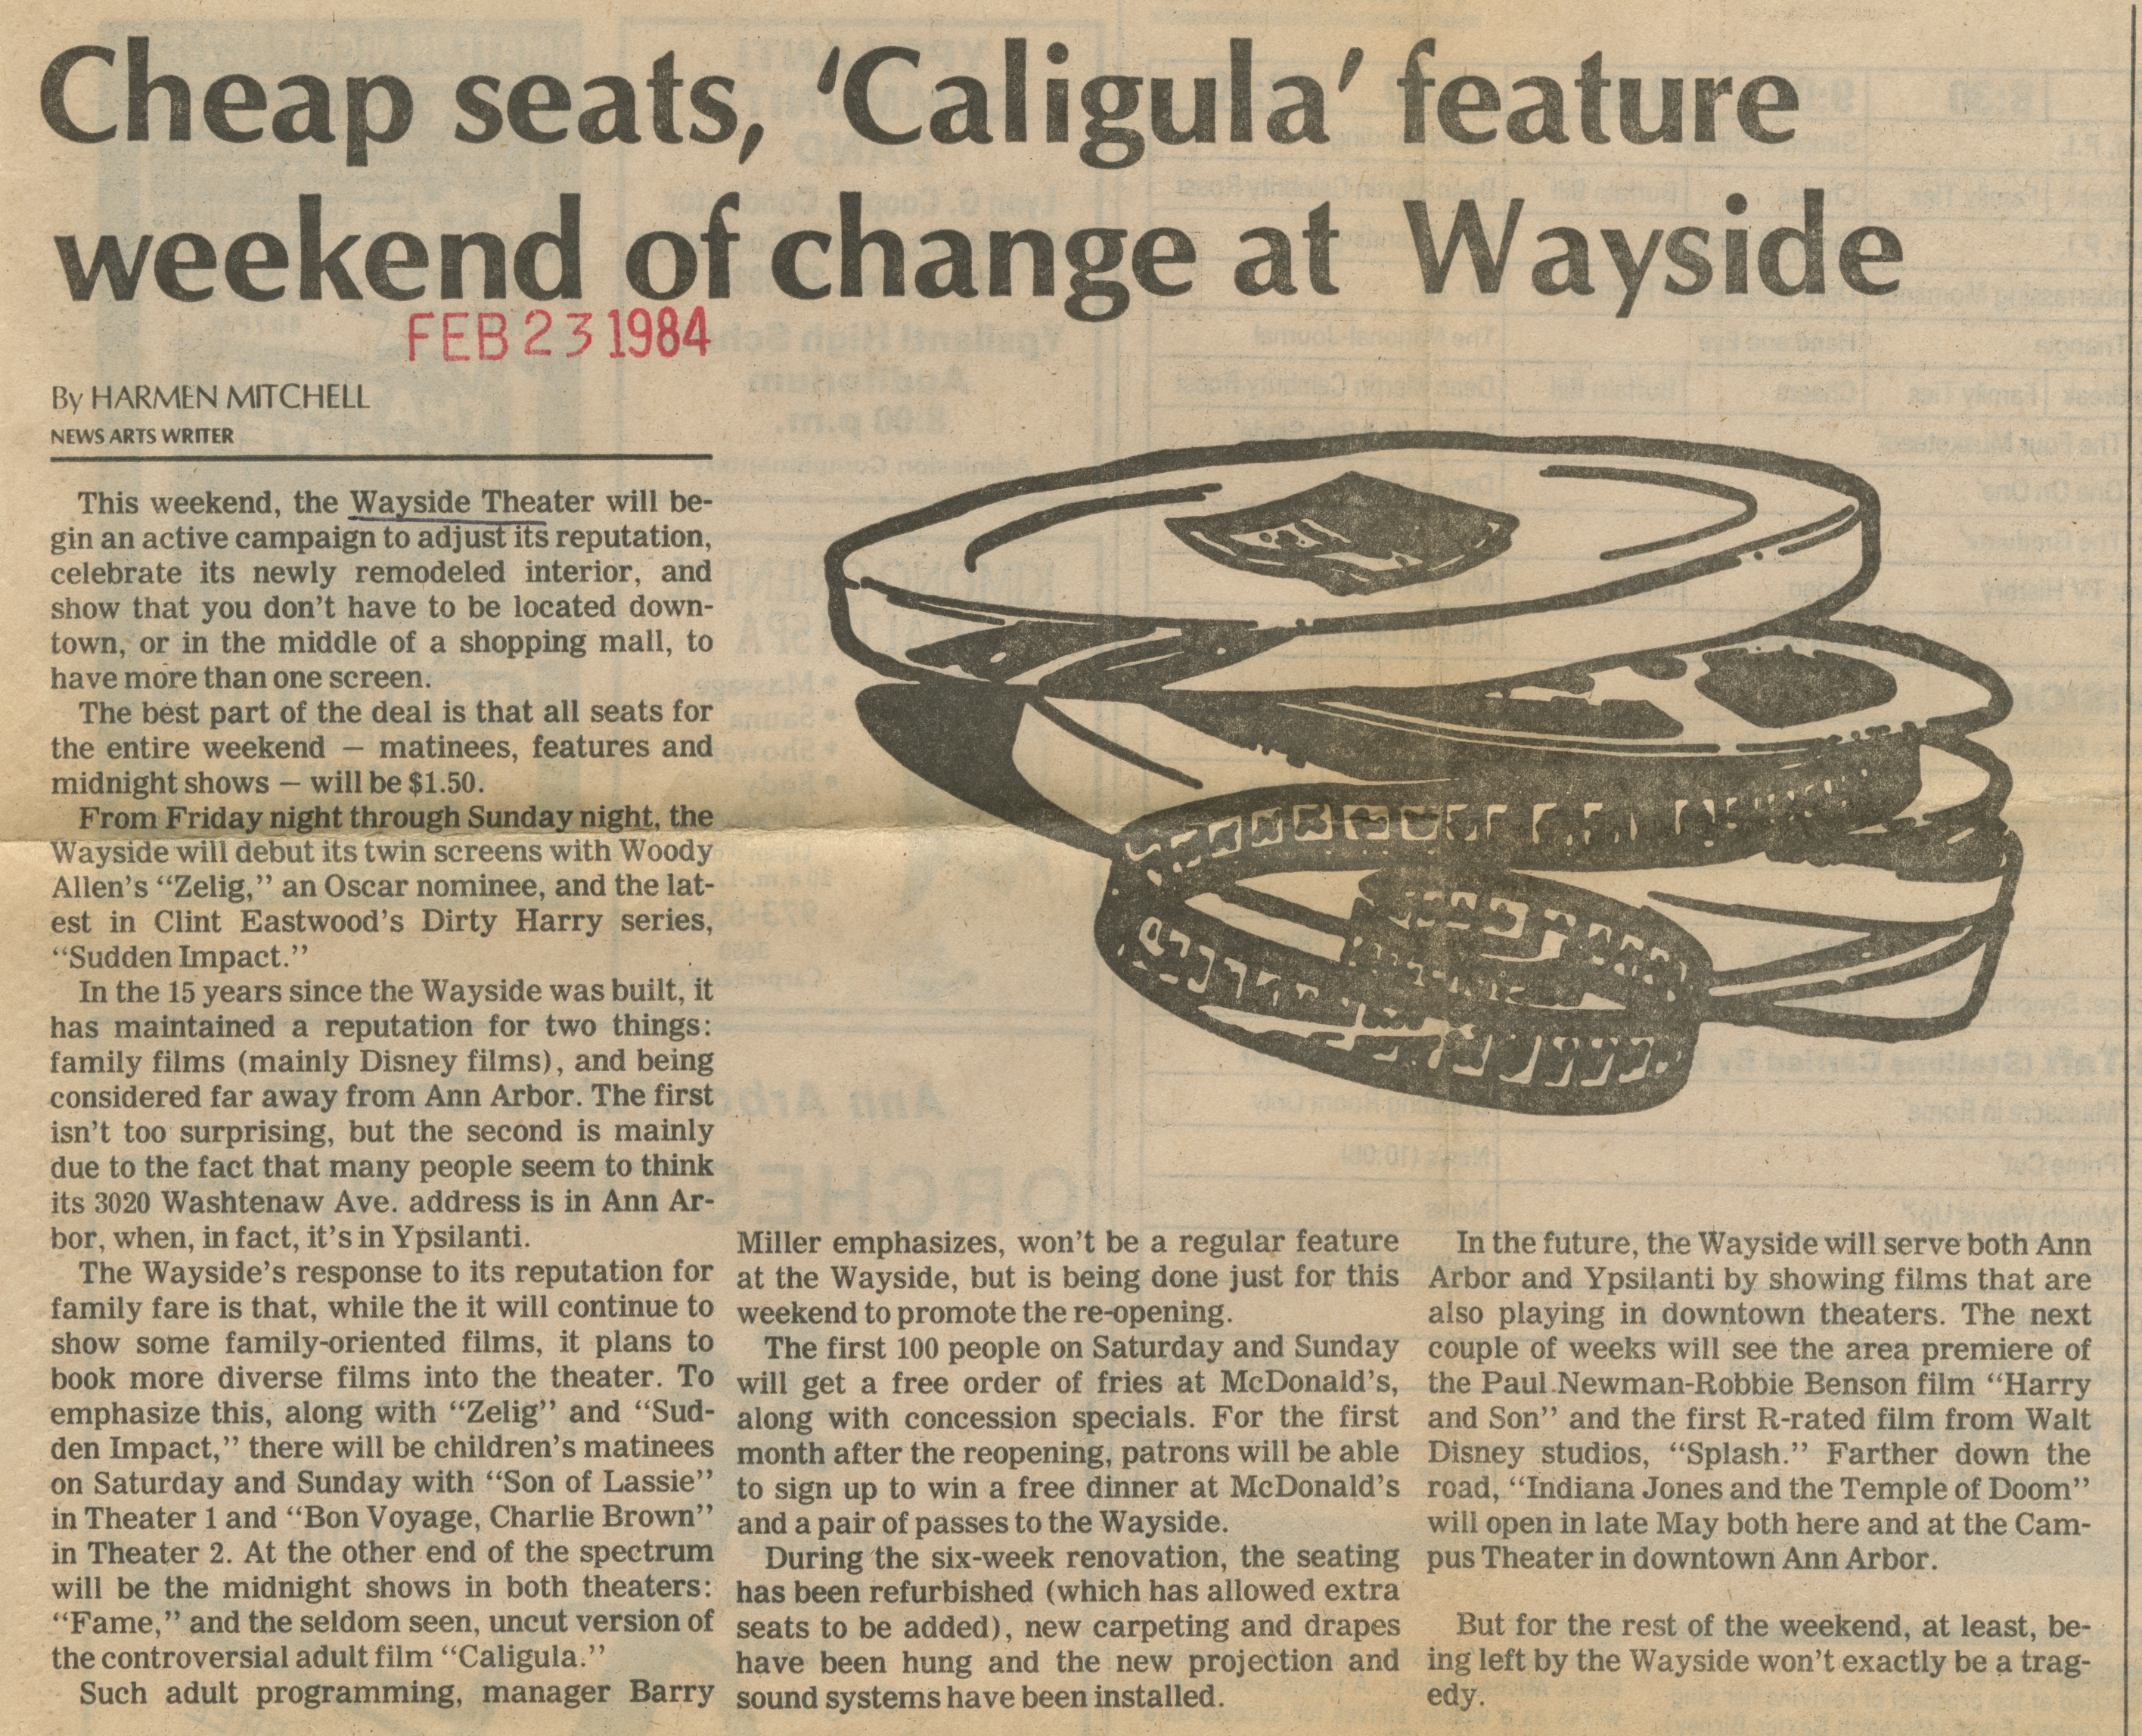 Cheap seats, 'Caligula' feature weekend of change at Wayside image